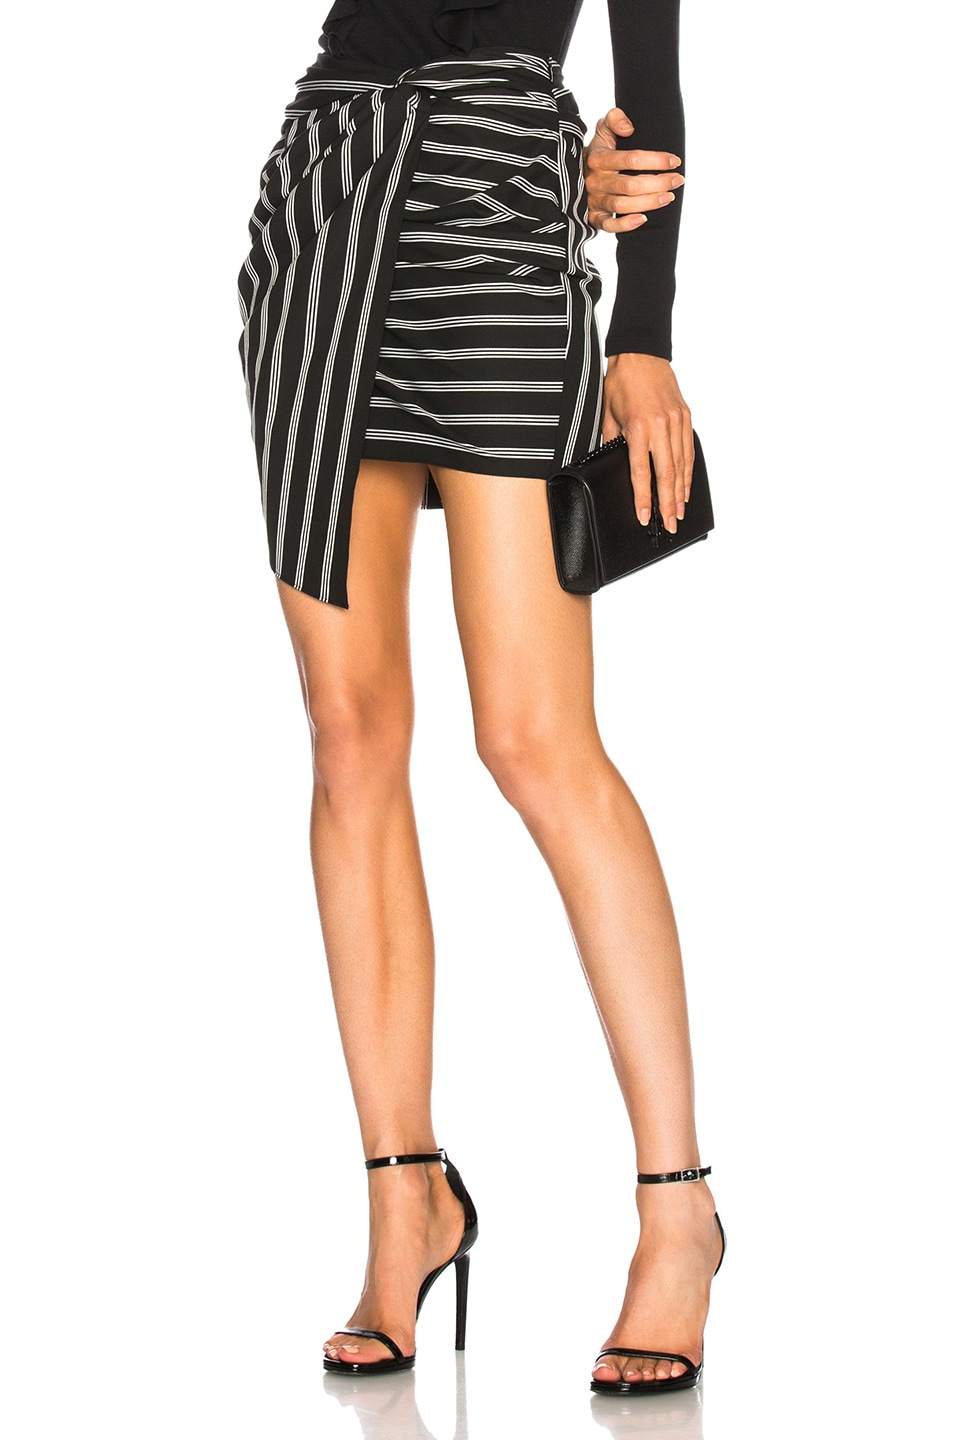 VERONICA BEARD AIDA MINI SKIRT IN BLACK,STRIPES